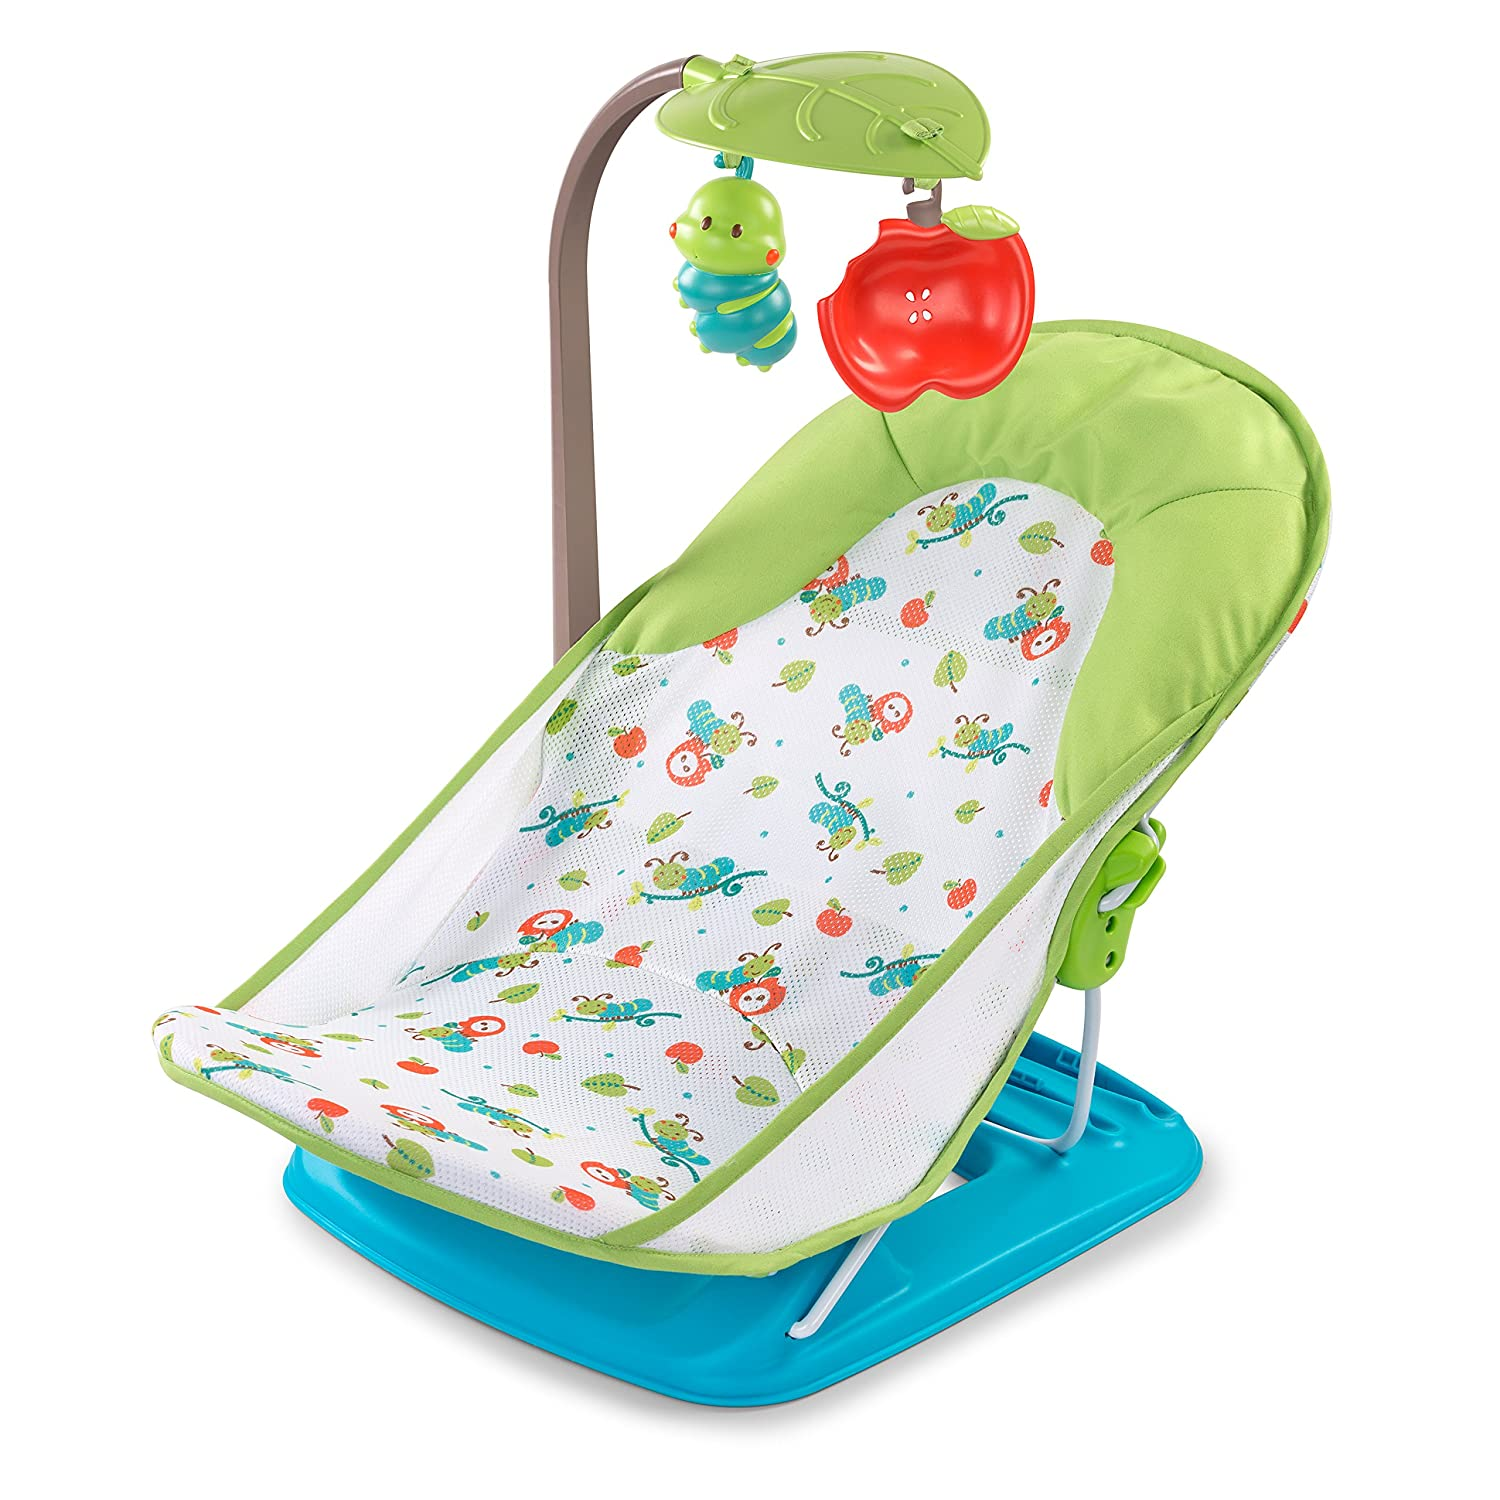 Summer Infant Deluxe Baby Bather & Toybar   B00LM6JQB0